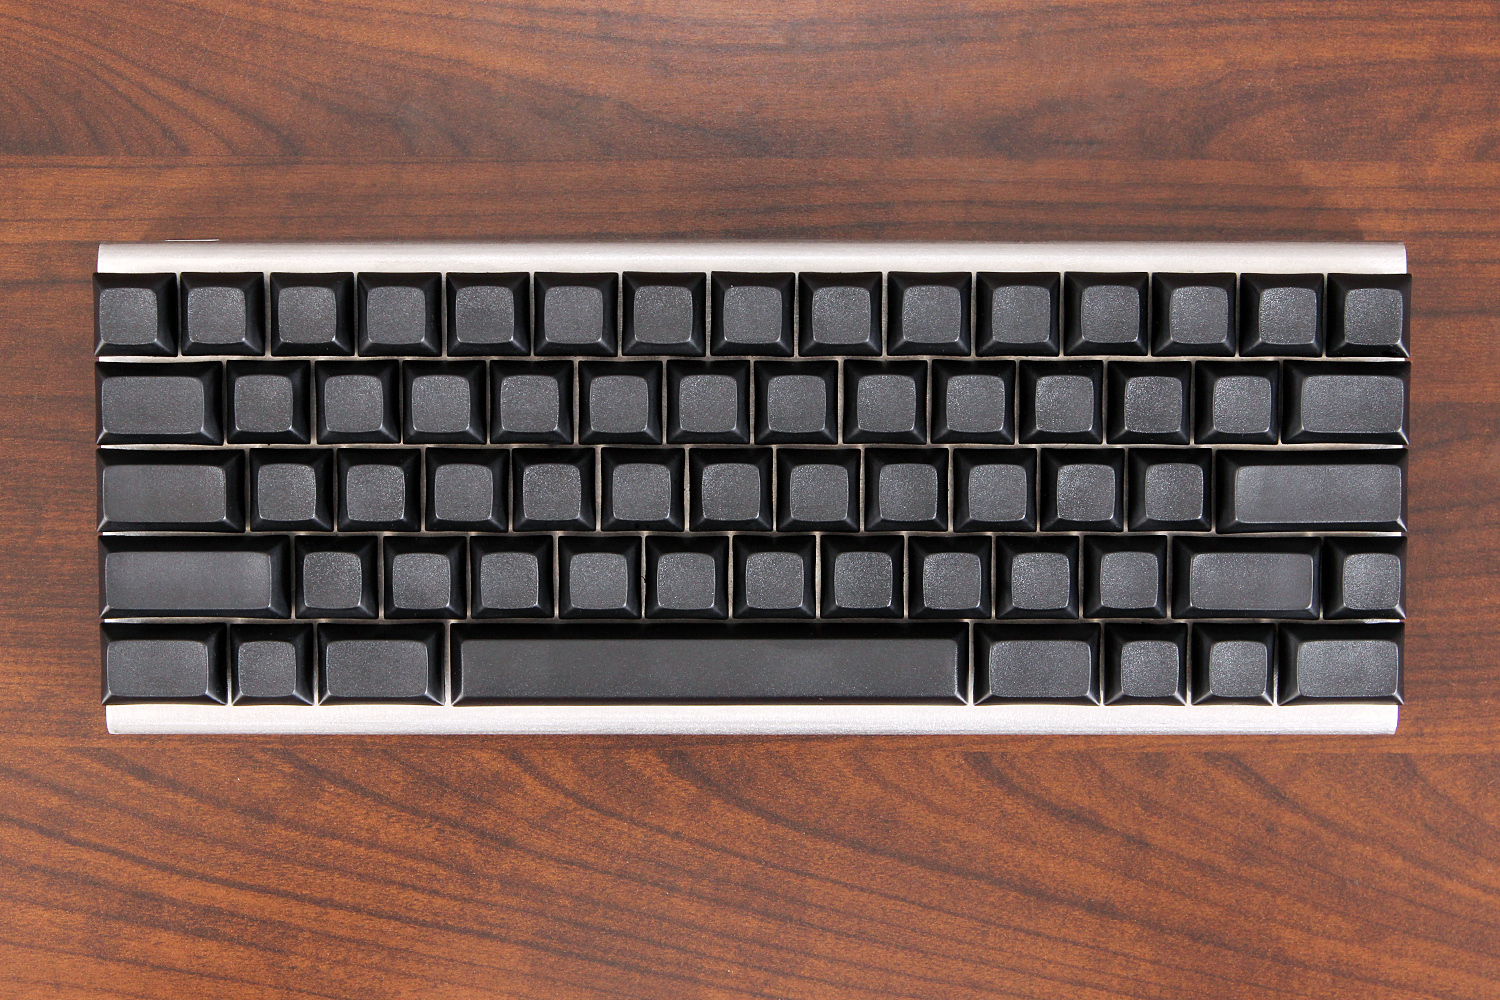 The story behind infinity a community designed keyboard massdrop lets dive deeper into the pcb and explain whats so different about it the infinity keyboard buycottarizona Choice Image